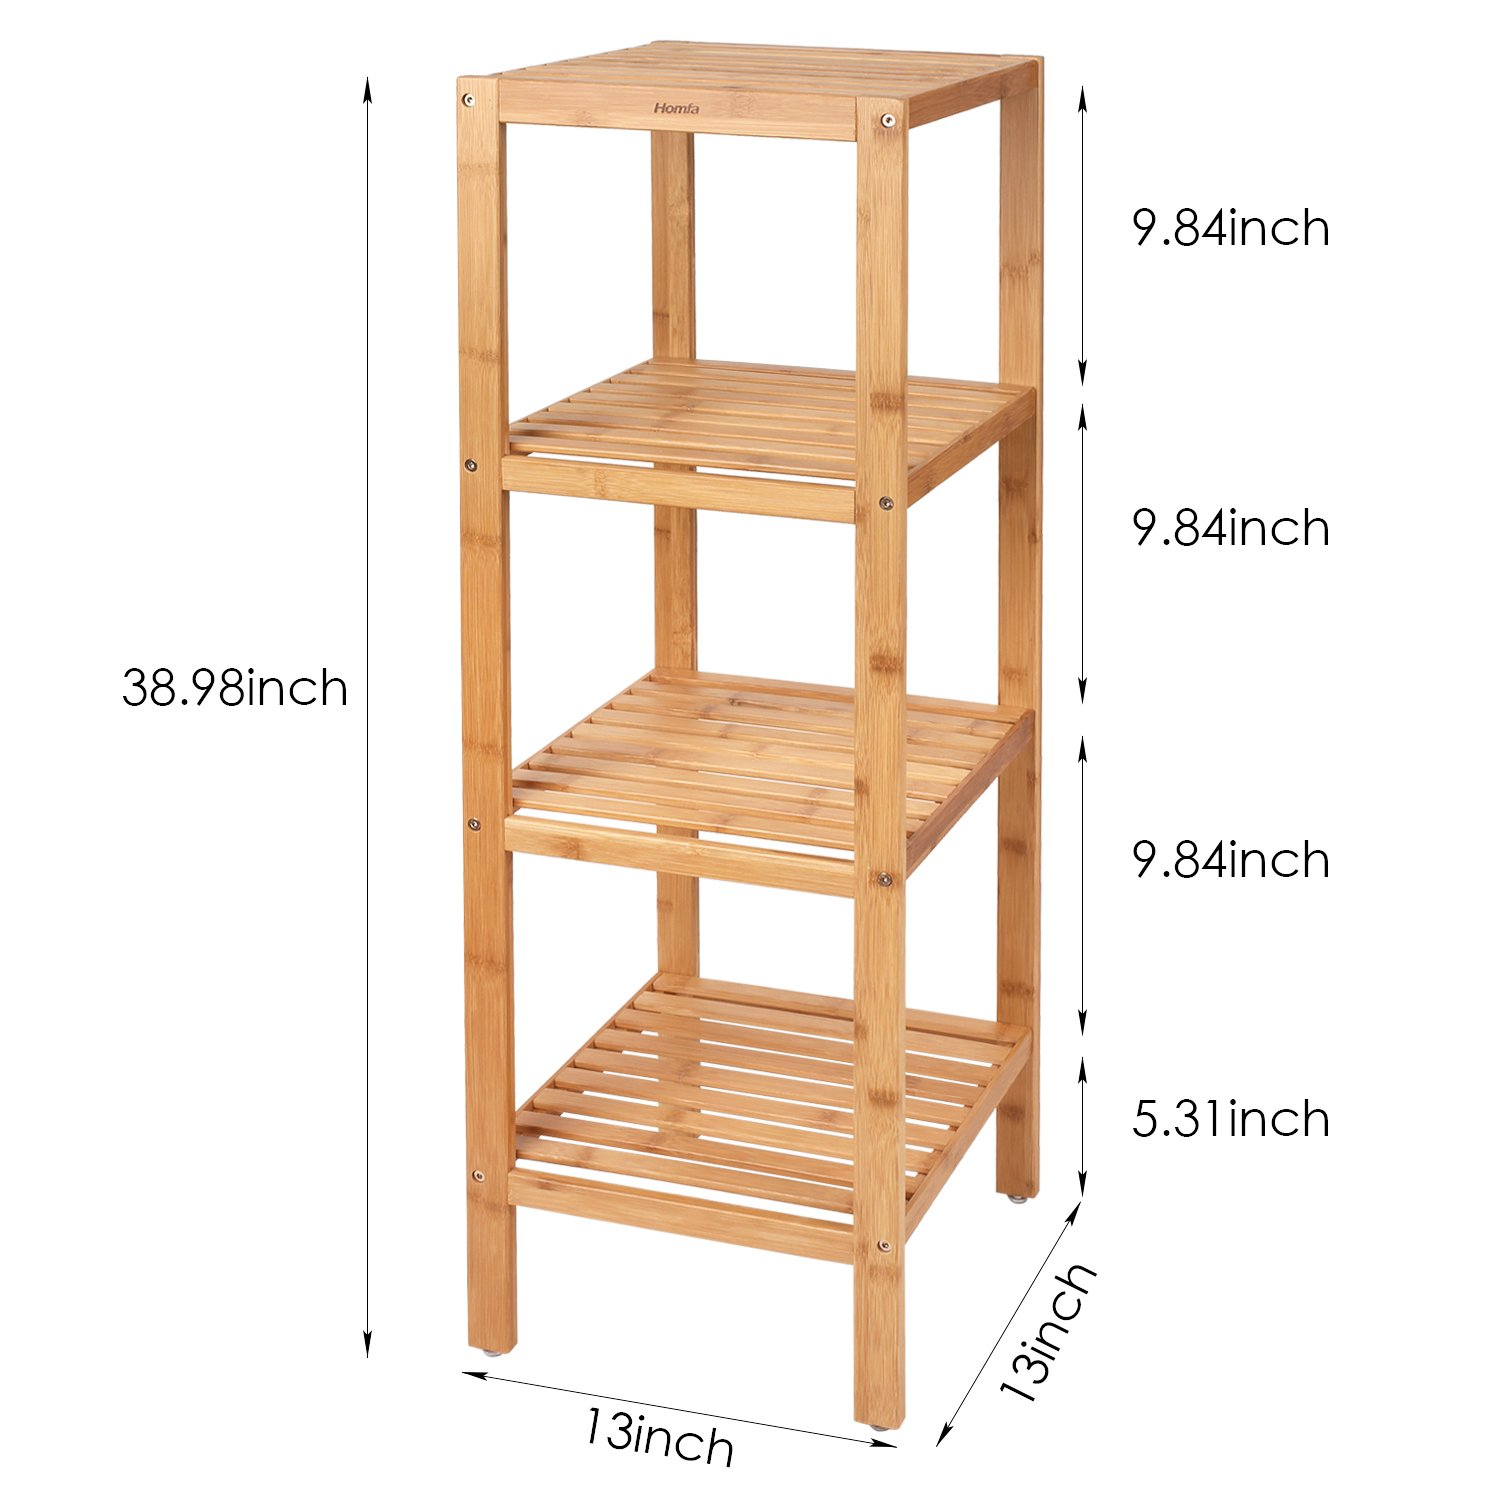 Bamboo Bathroom Shelf 4-Tier Tower Free Standing Rack Multifunctional Storage Organizer